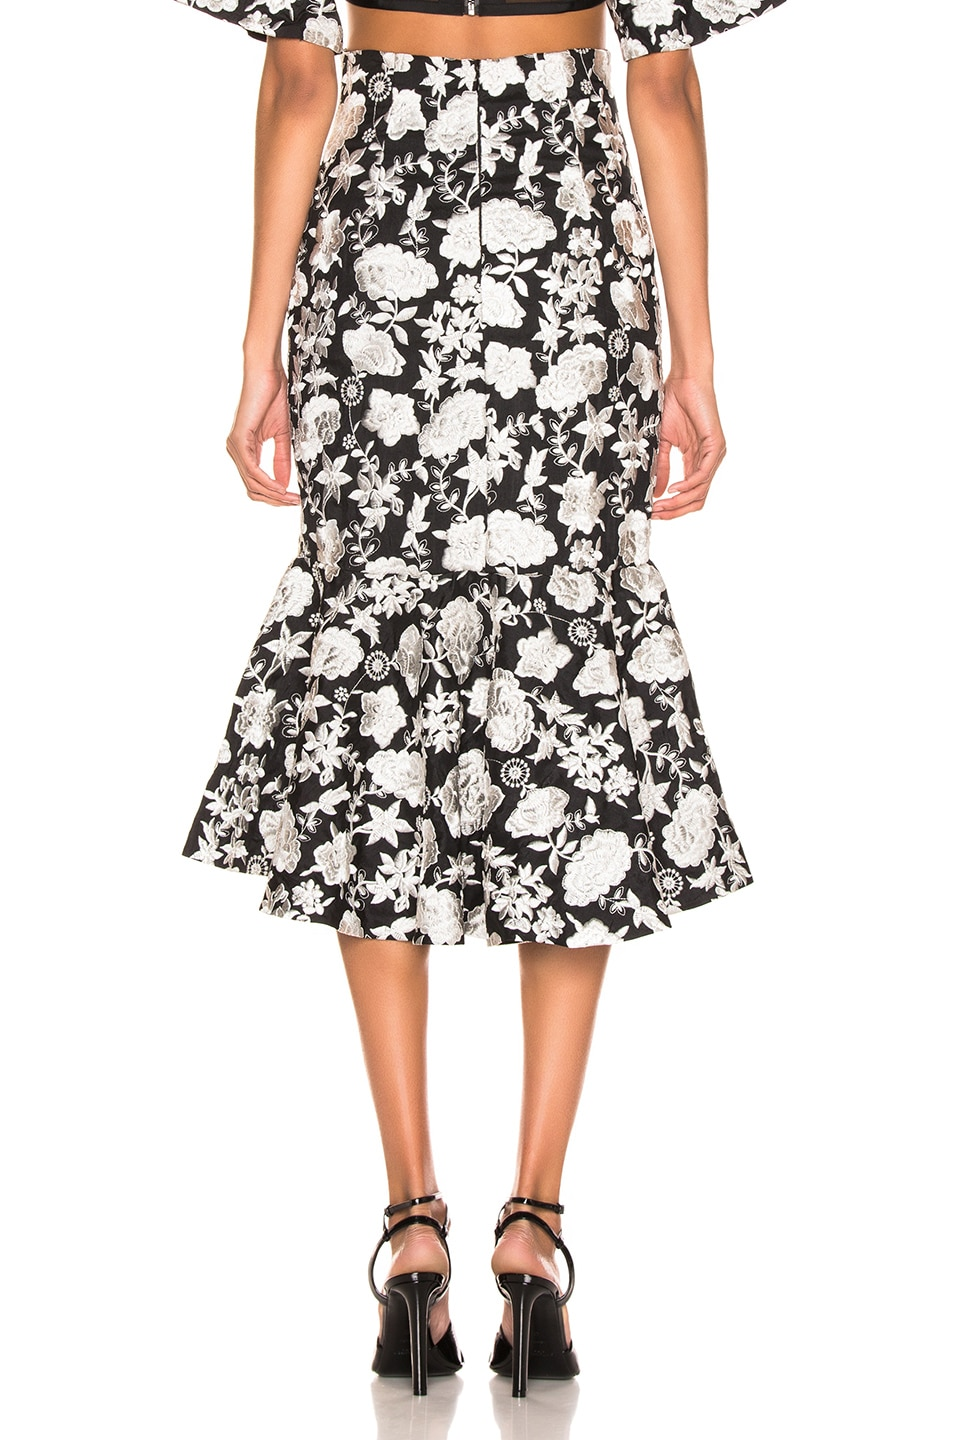 Image 3 of Alexis Reece Skirt in Ivory Floral Embroidery